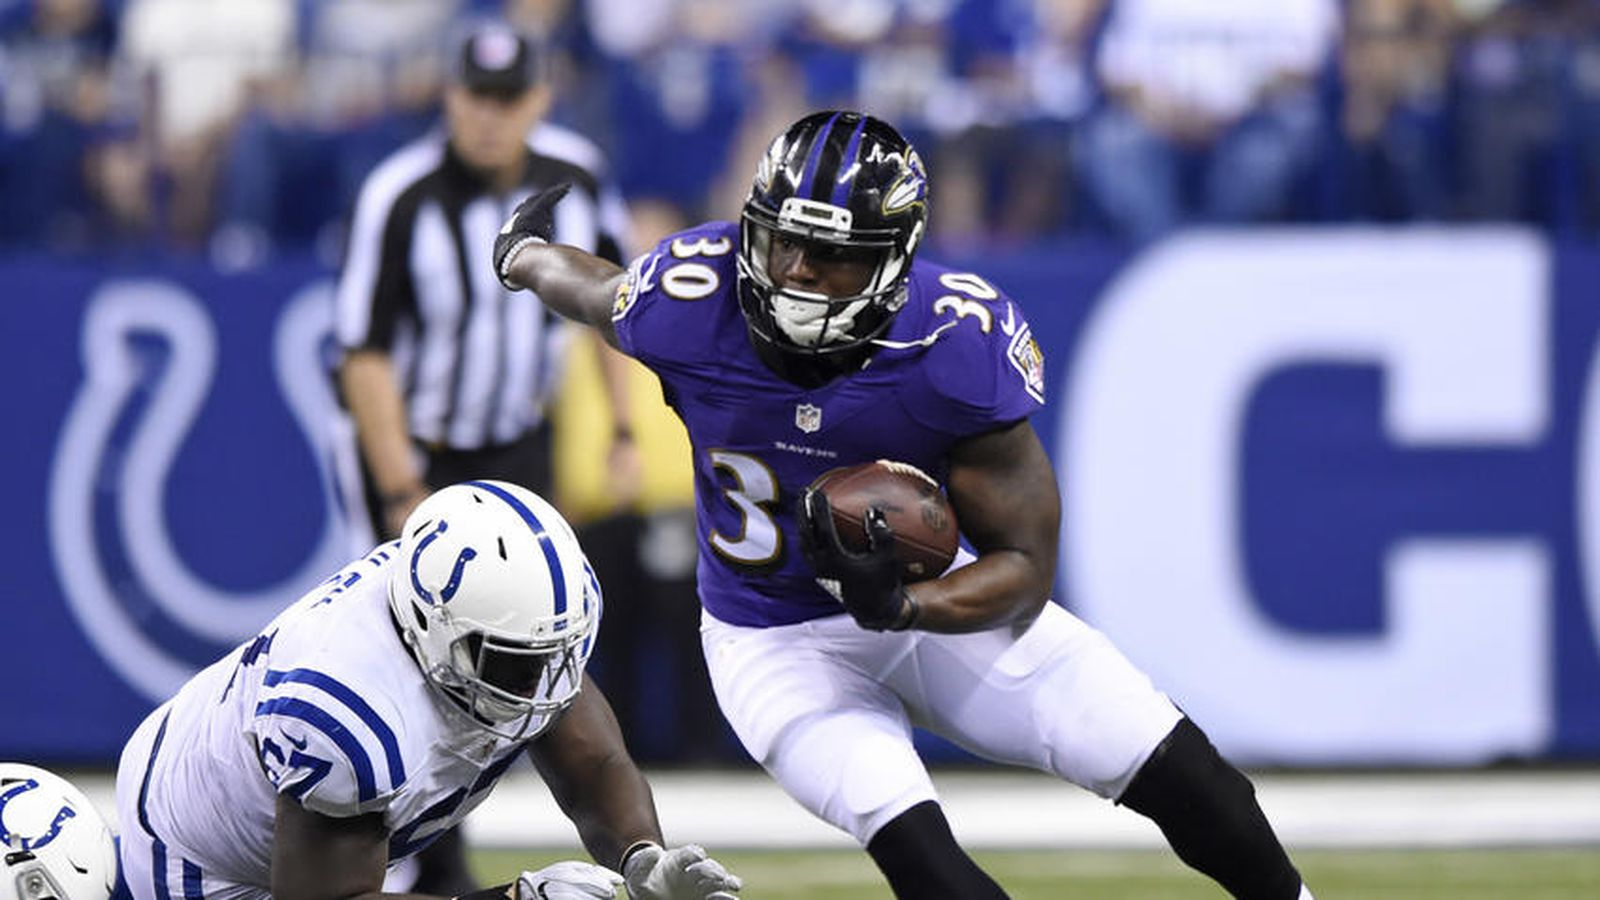 Bal-ravens-at-colts-preseason-week-2-20160820-009.0